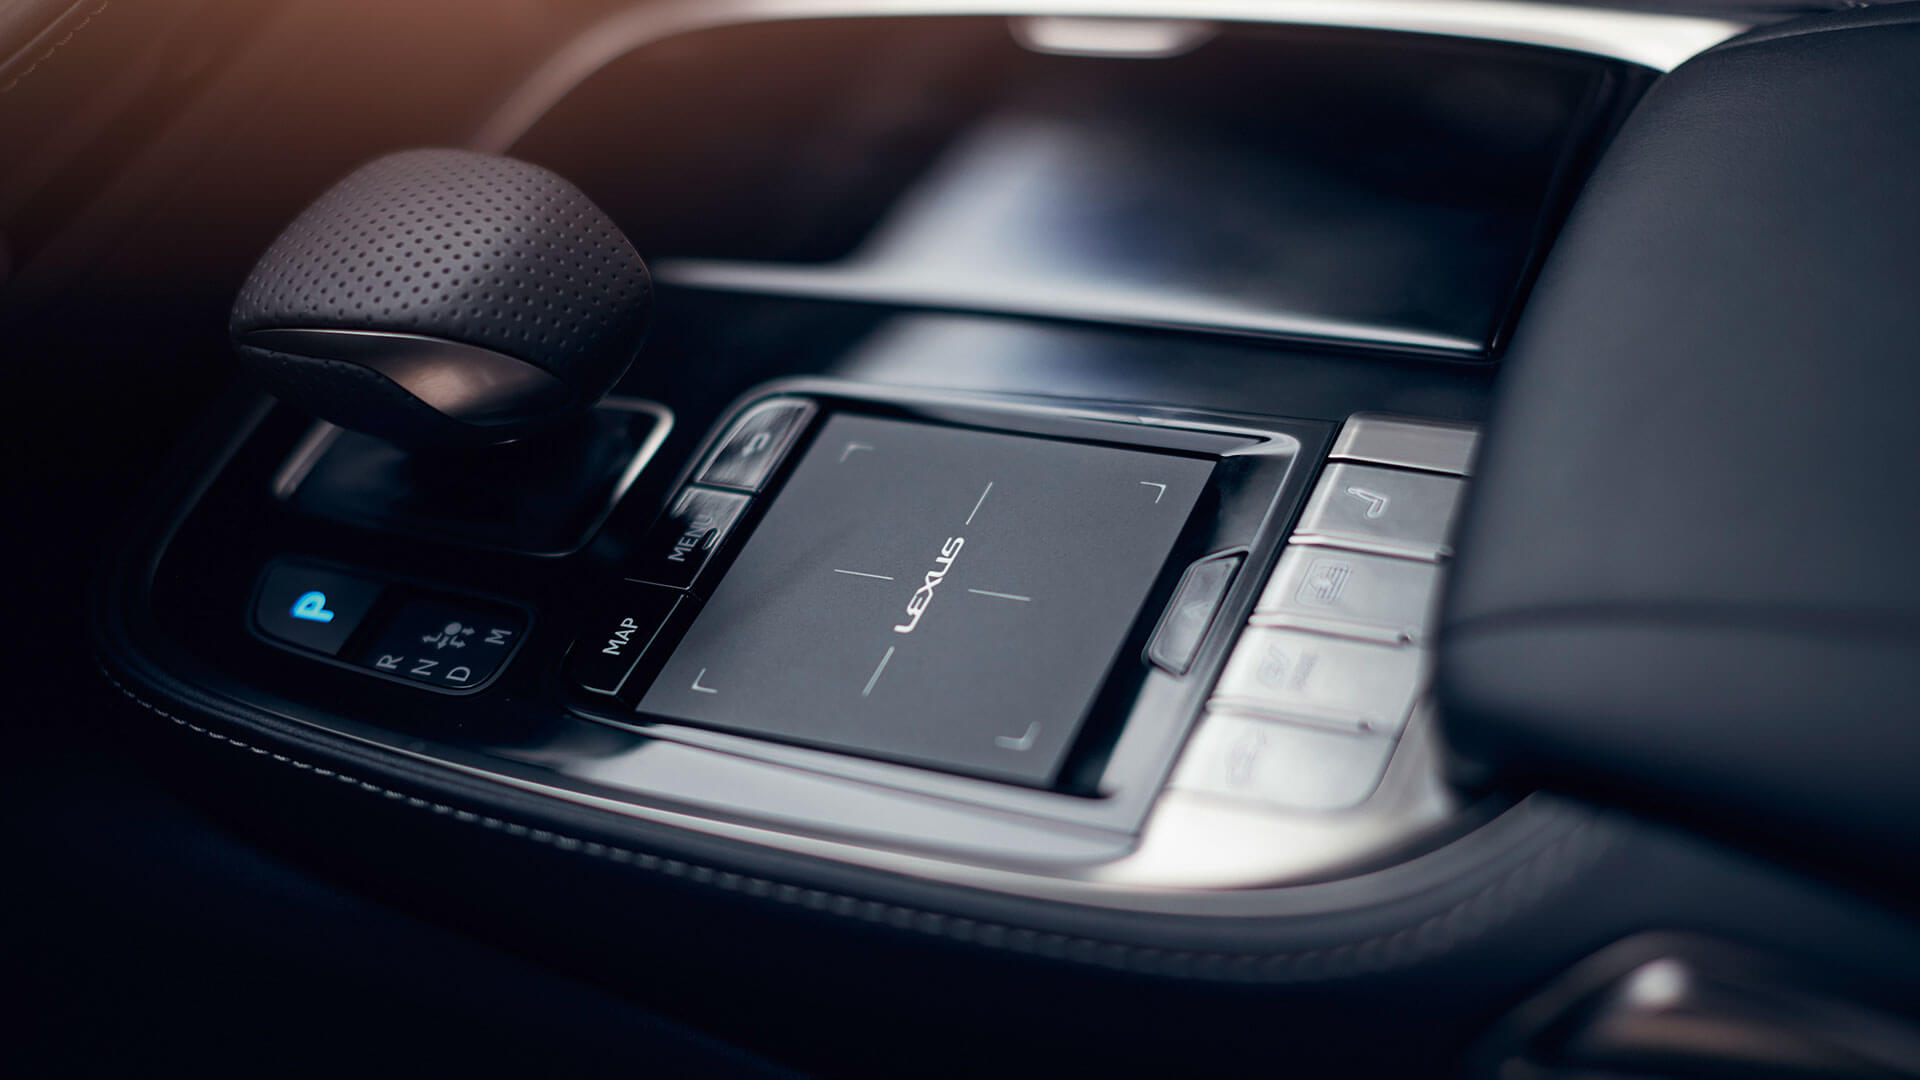 2018 lexus ls features touch pad